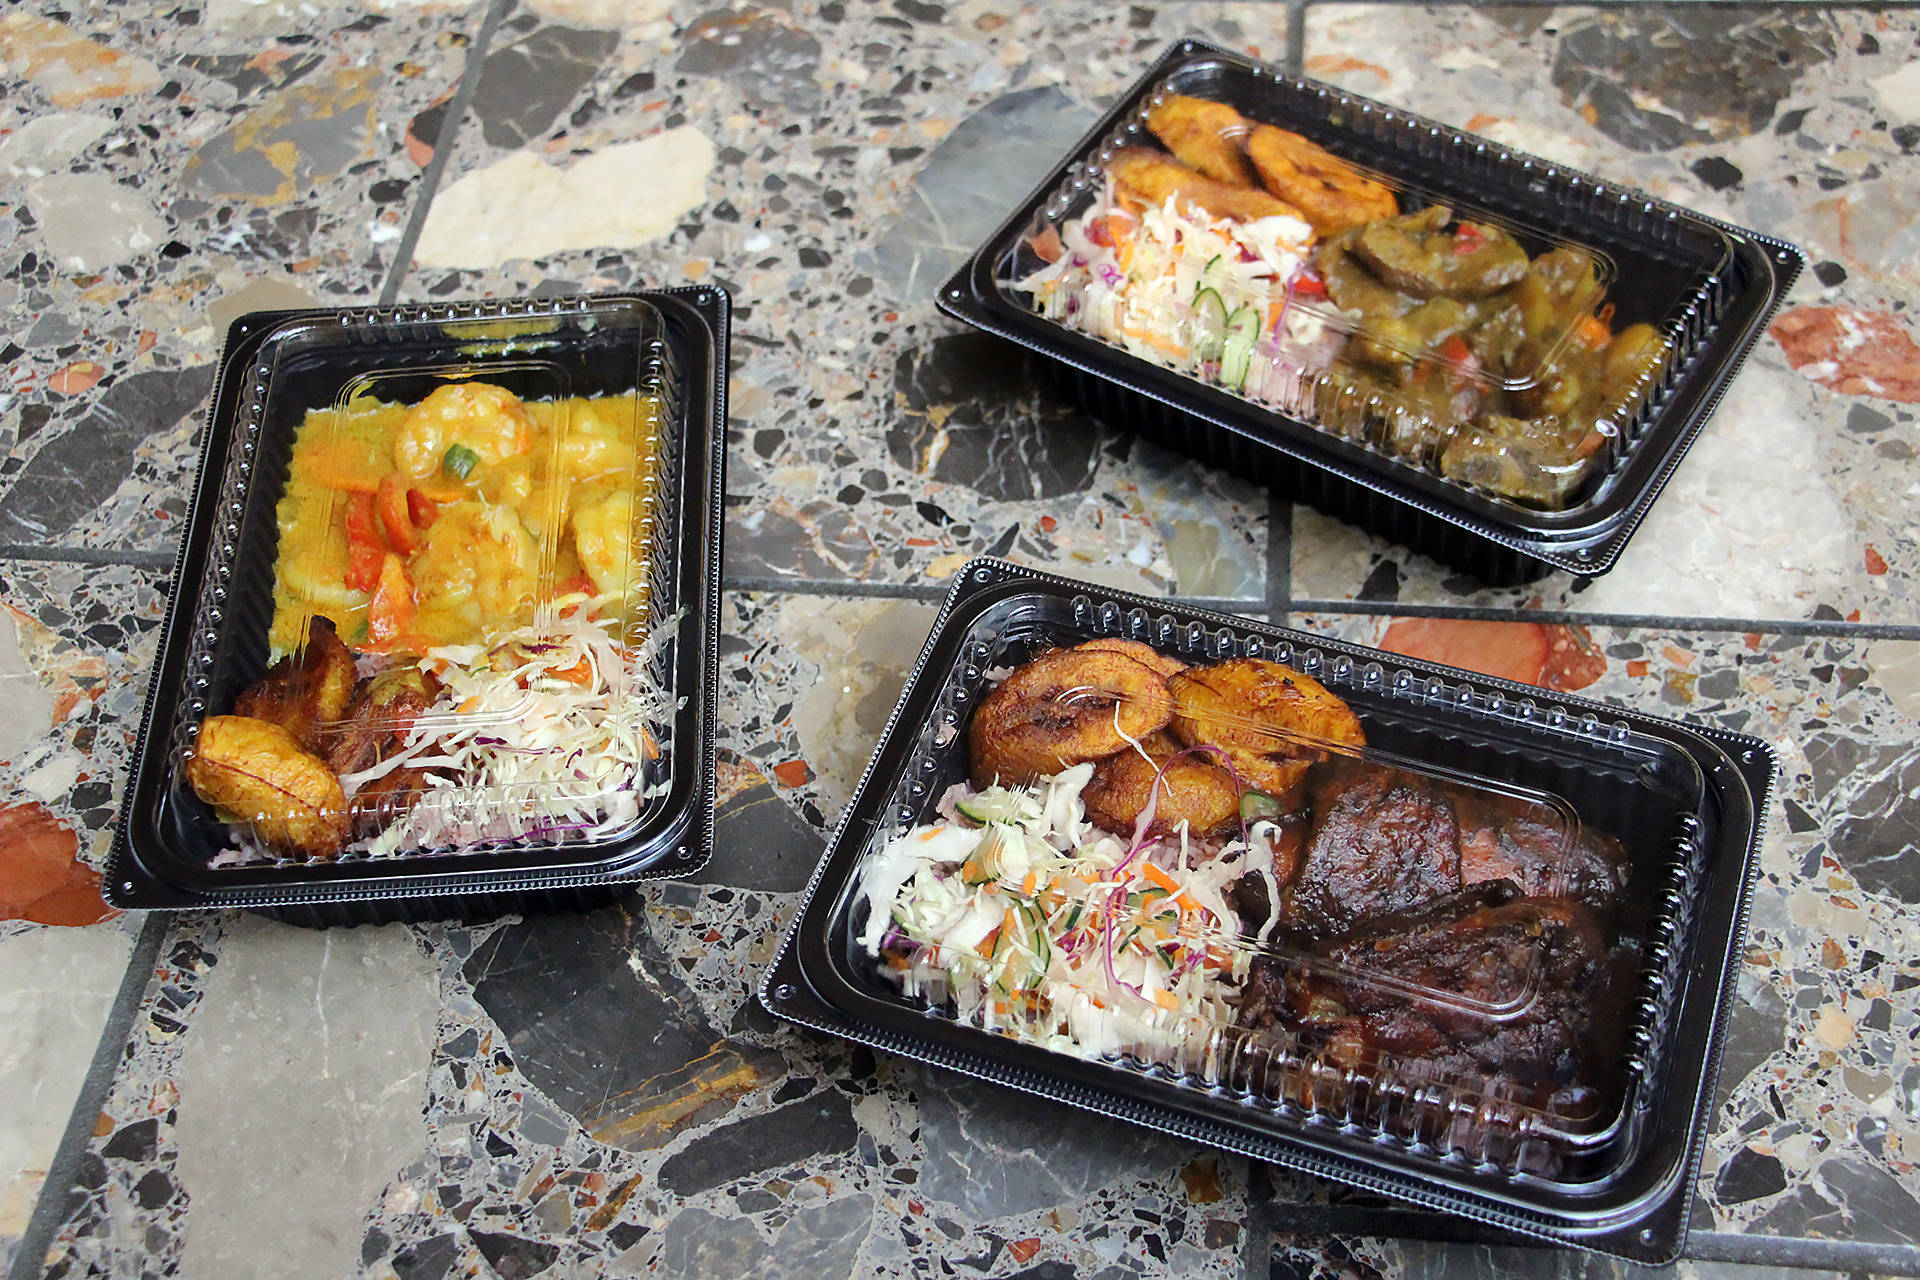 Curry Shrimp, Curry Goat and Jerk Chicken from  Scotch Bonnet. Wendy Goodfriend